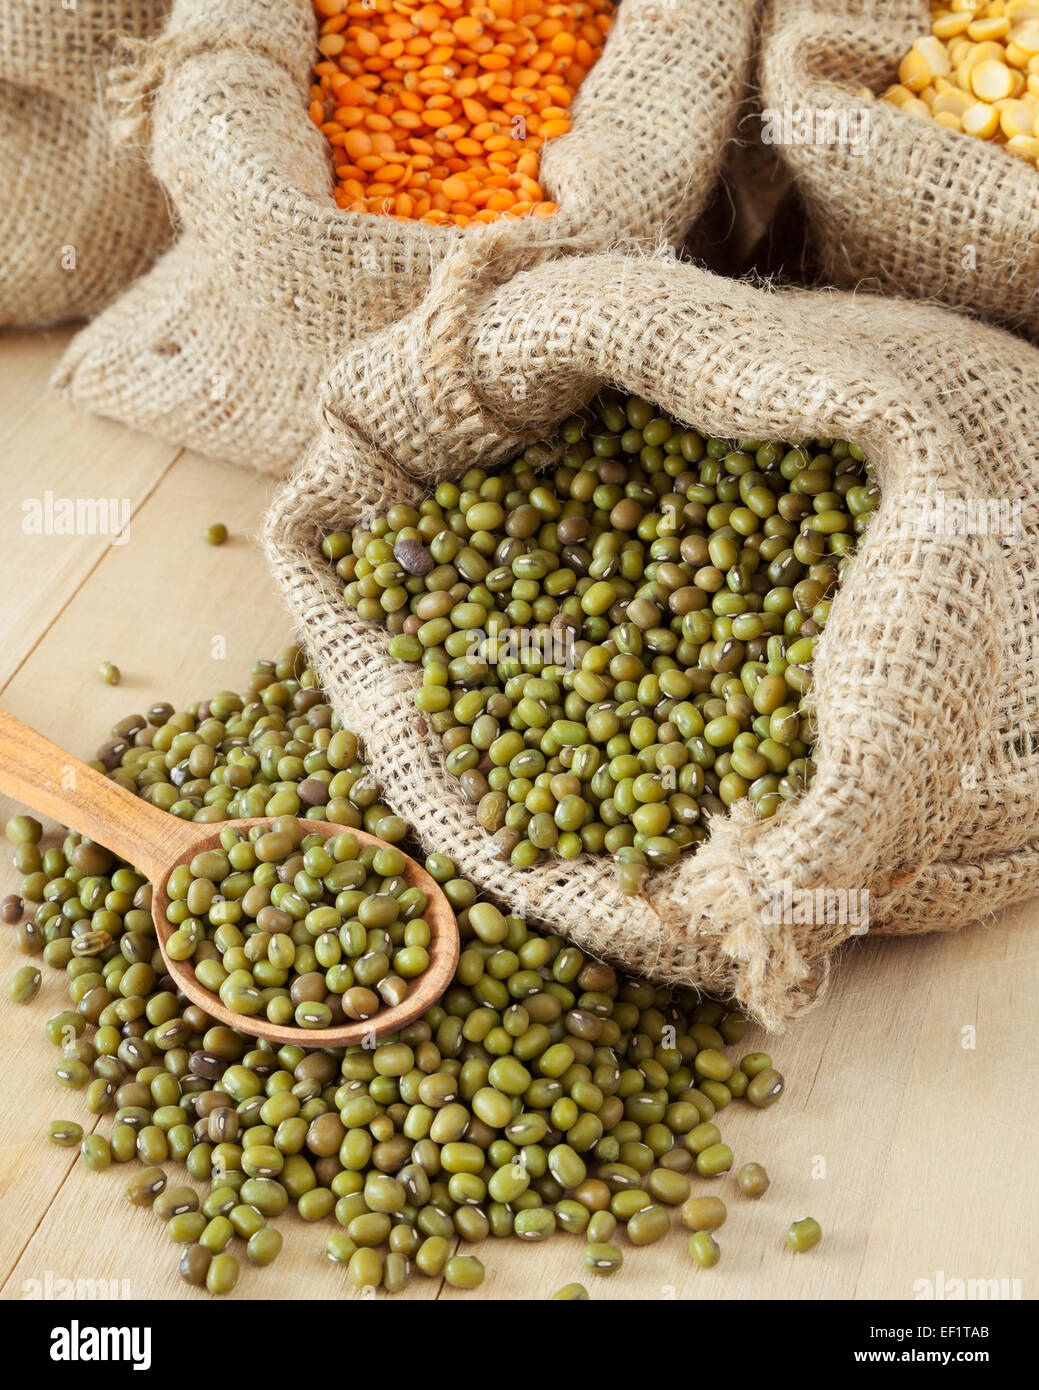 hessian bags with cereal grains: green mung closeup, red lentils and peas on wooden table - Stock Image